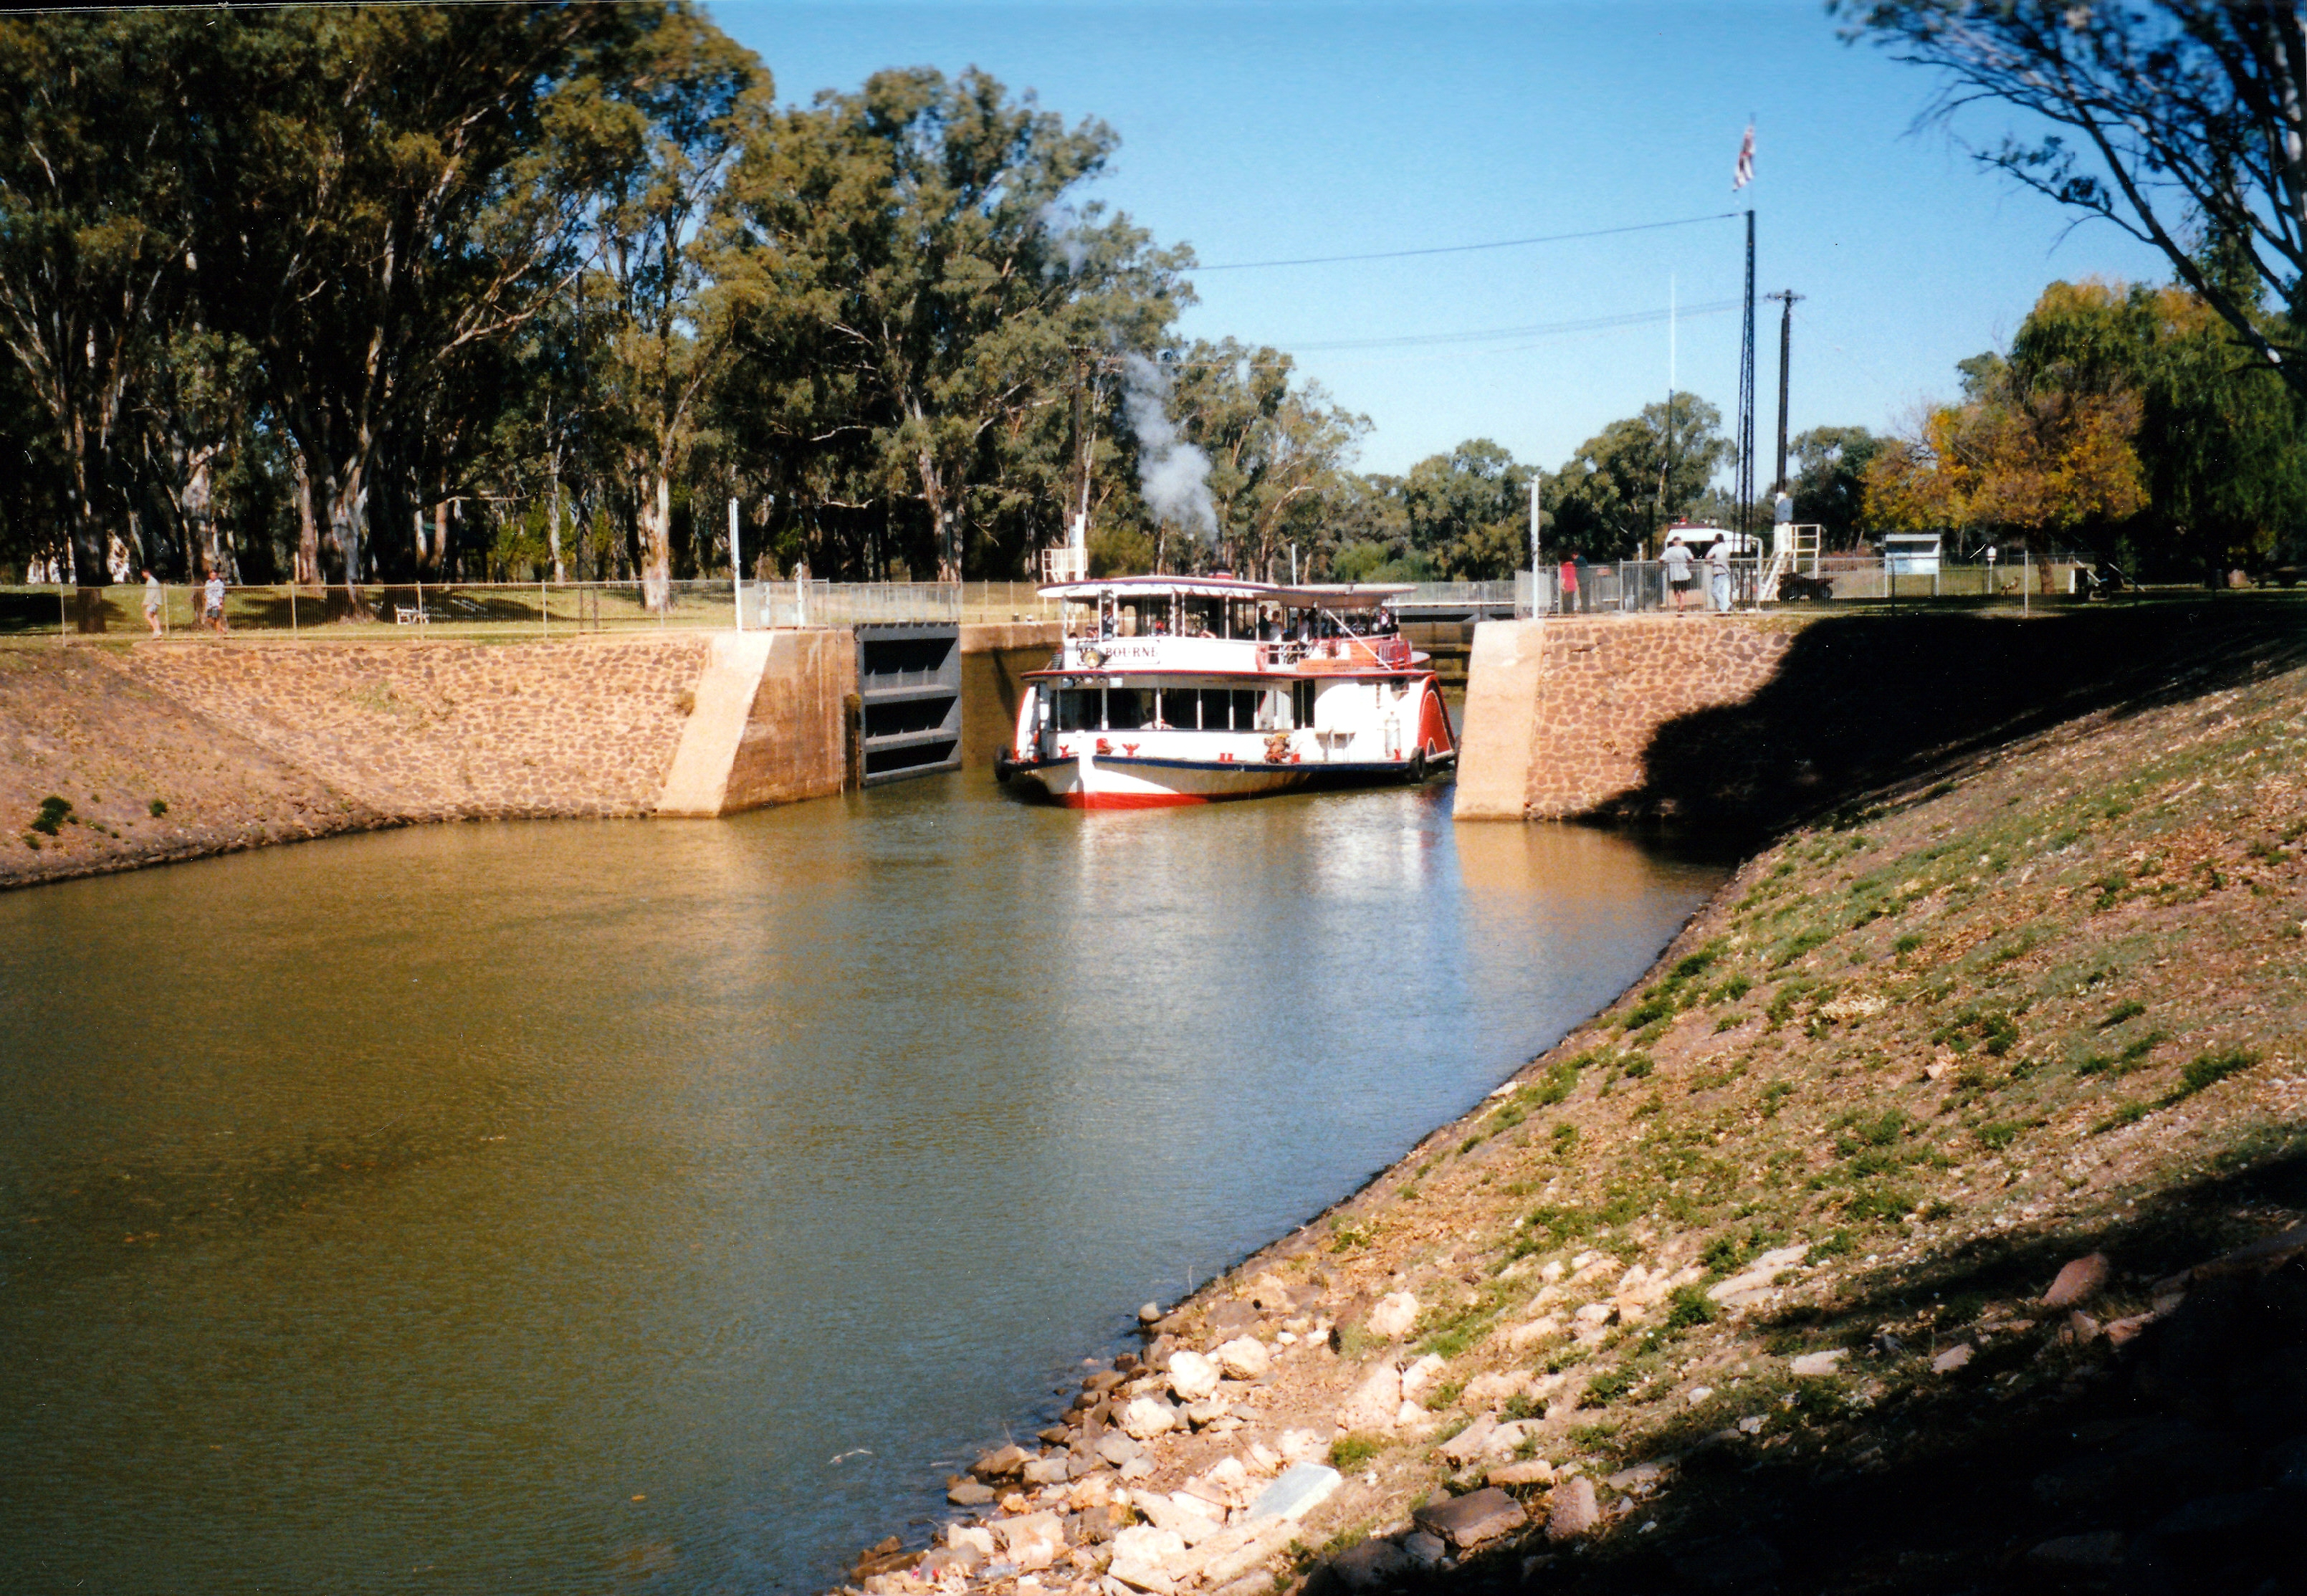 04-16-1999-ps-melbourne-exiting-lock-11